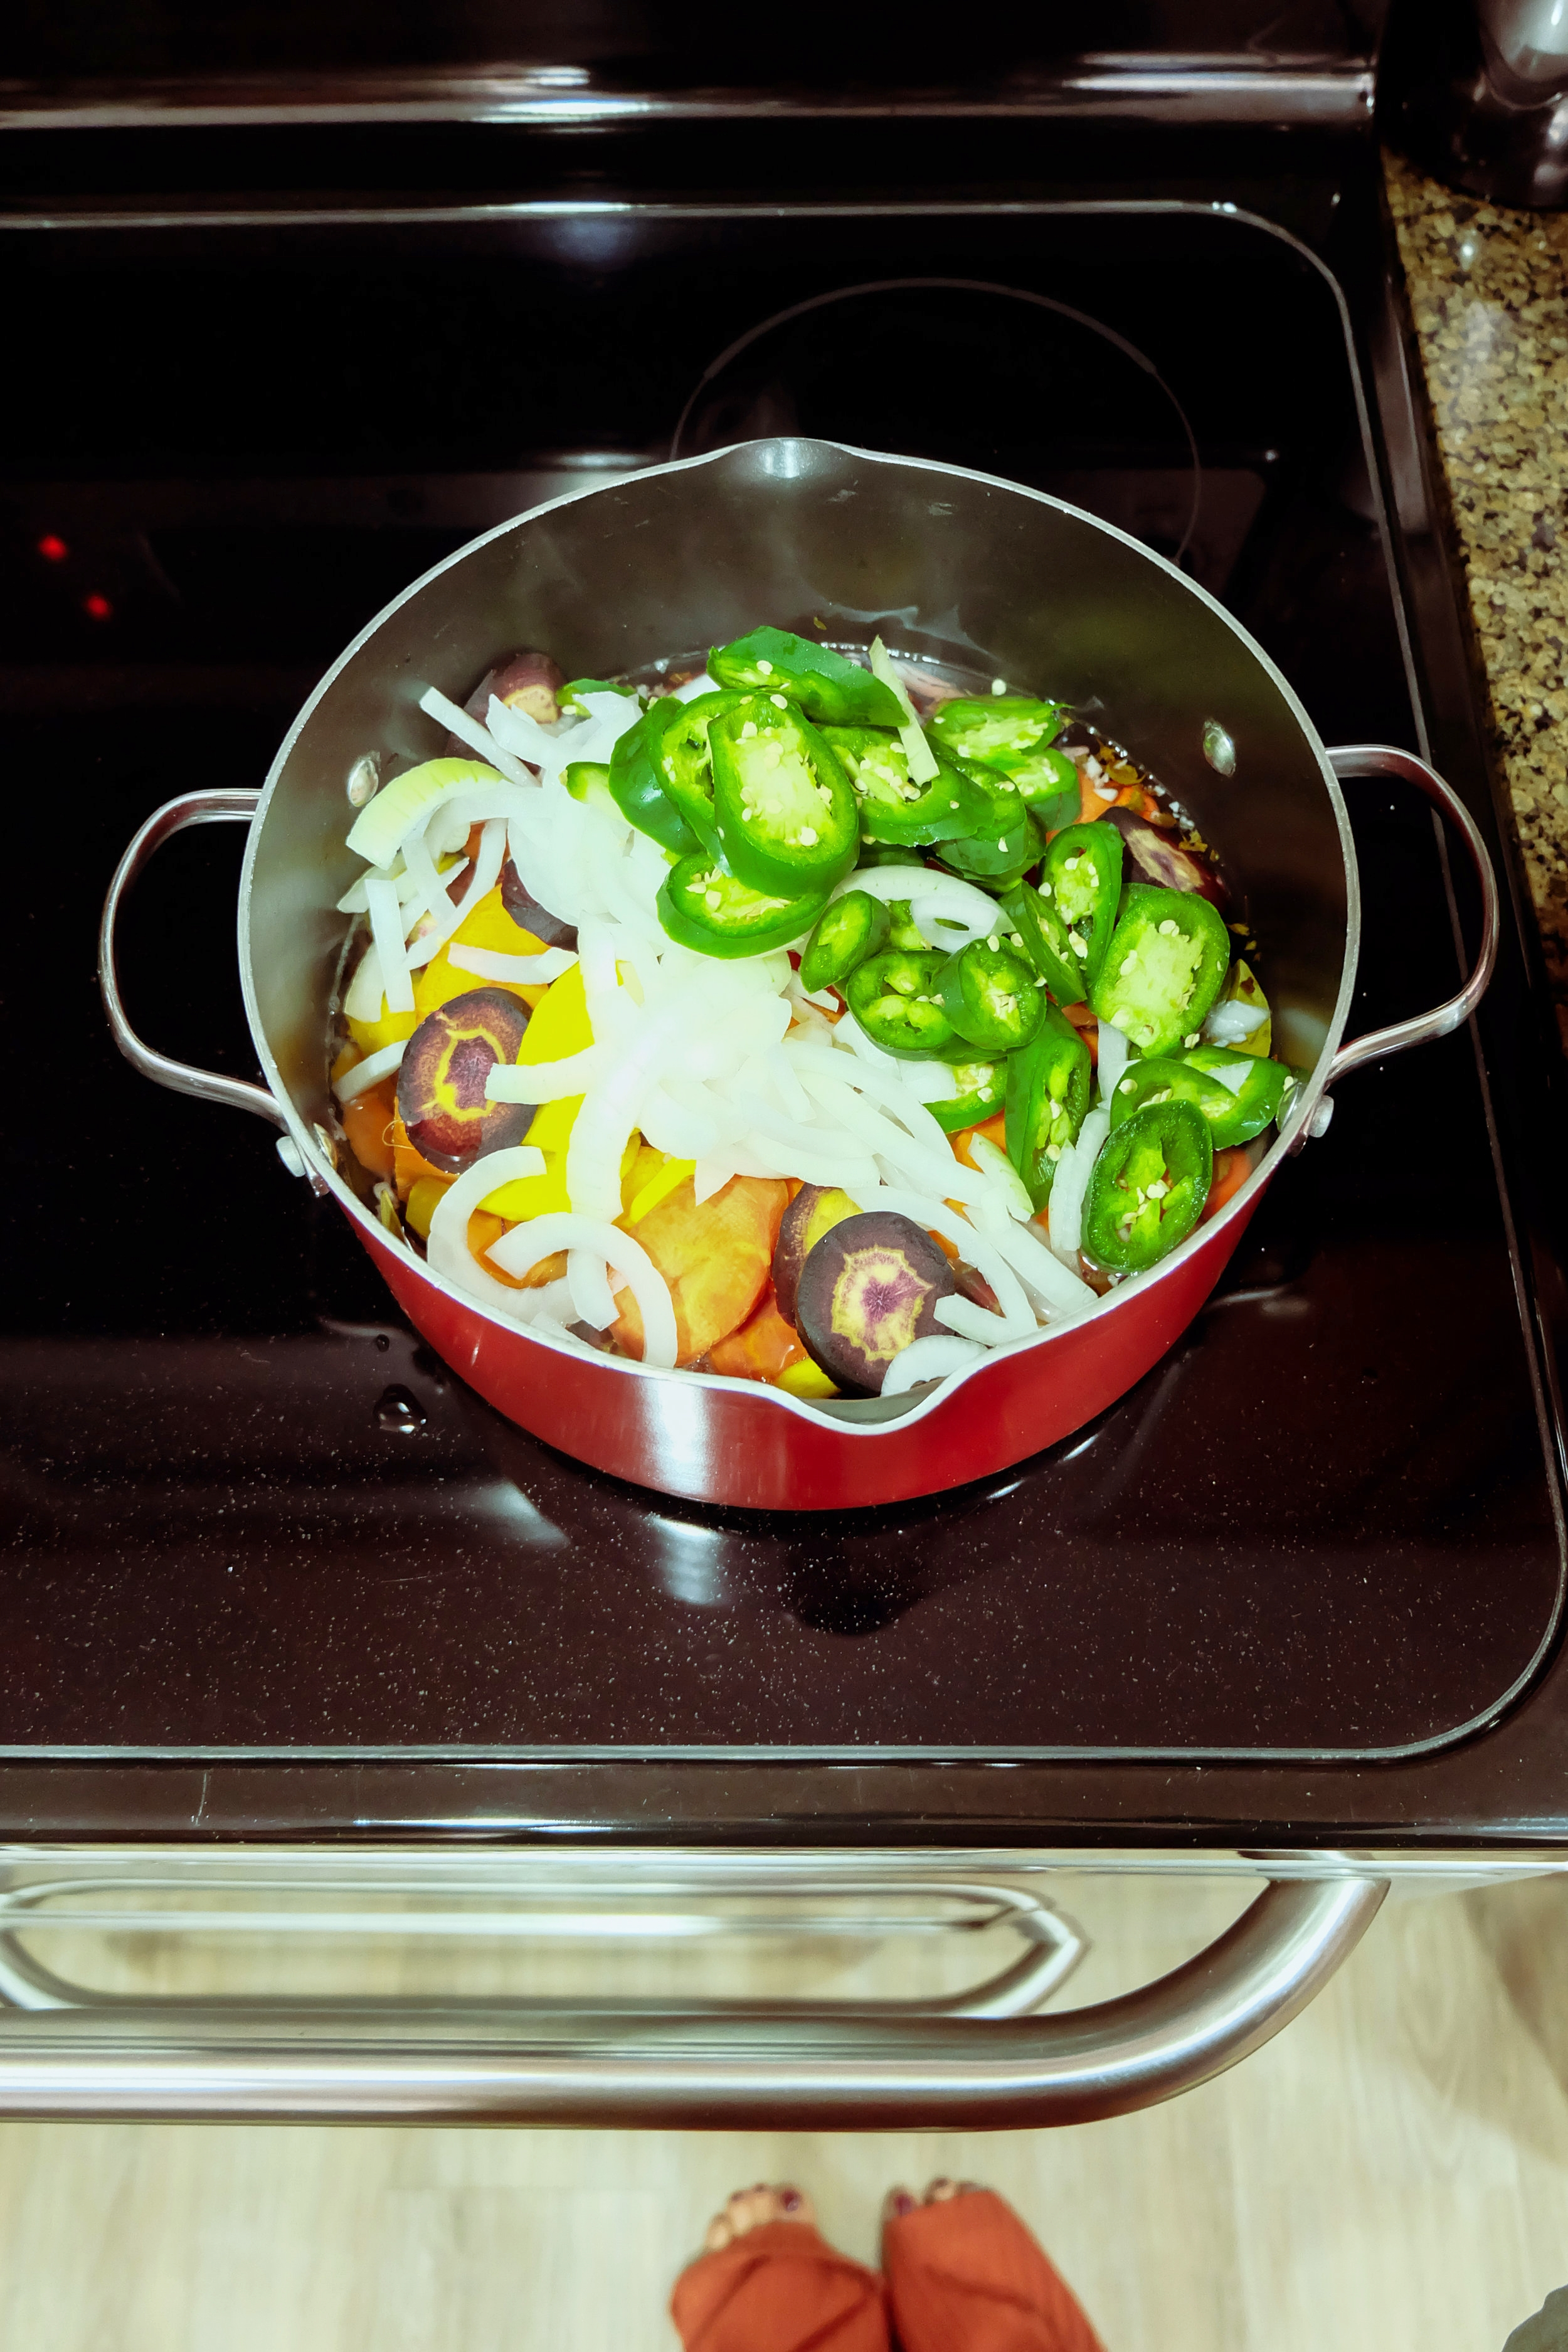 5. - Bring to a boil and add the carrots, onion and jalapeños. Lower heat to medium-low and cook for 15 minutes, uncovered.